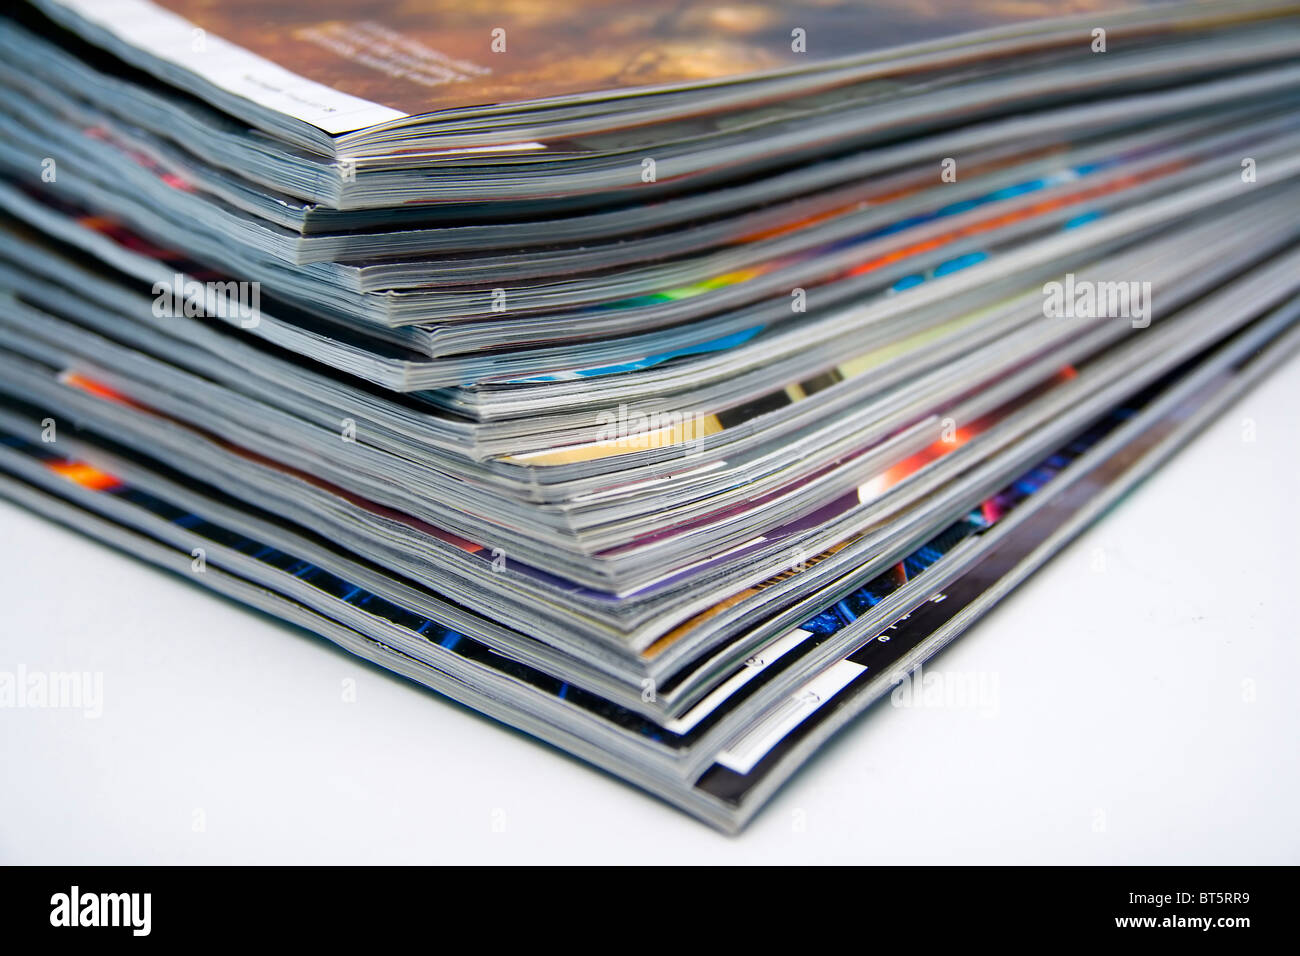 Close-up image of a stack of magazines - Stock Image